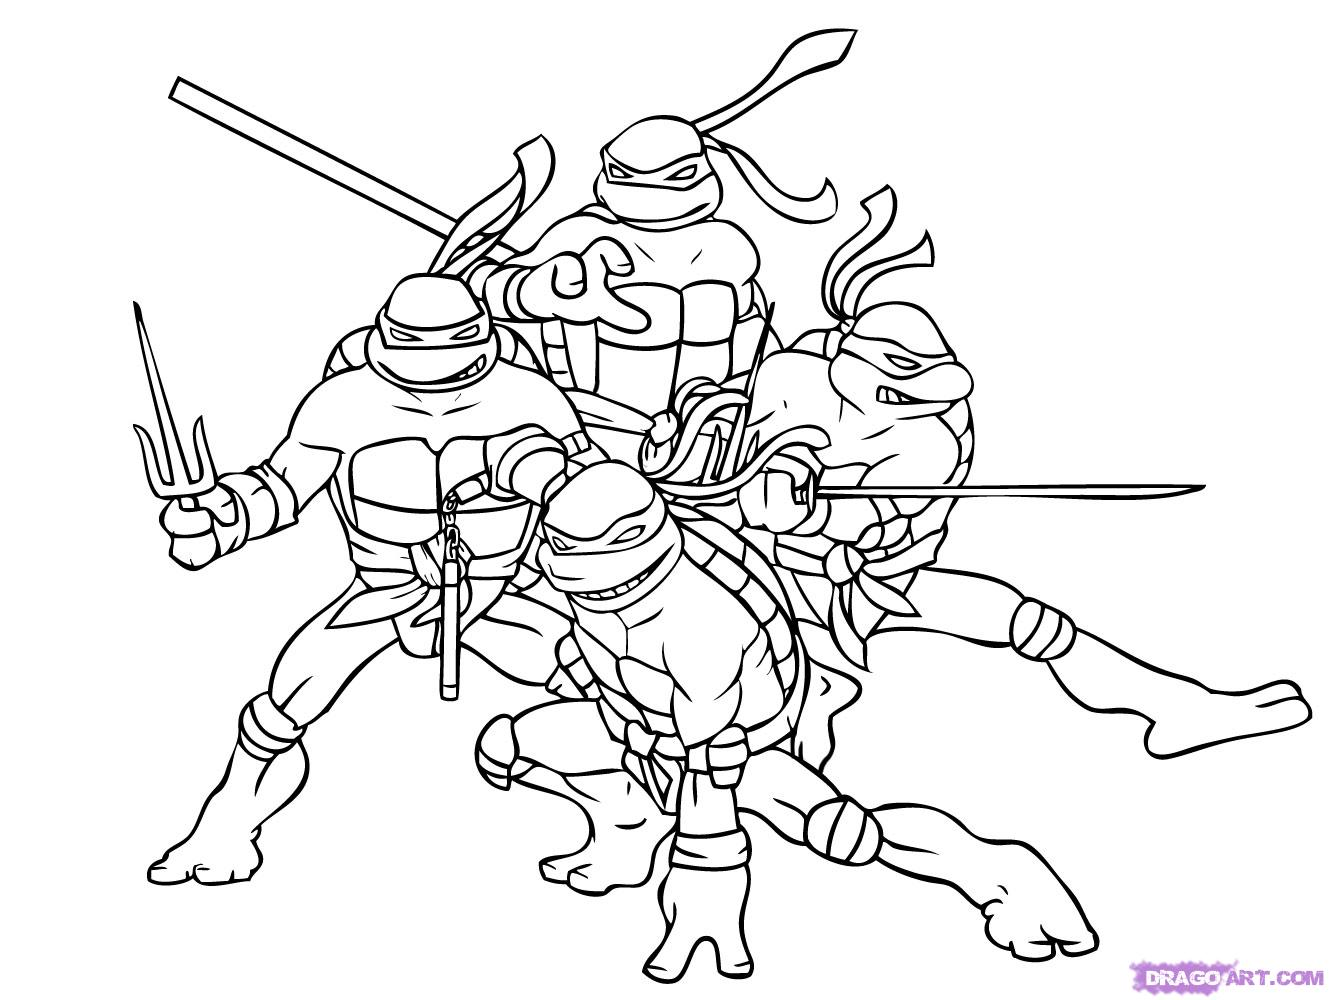 1329x1000 Teenage Mutant Ninja Coloring Pages, Coloring Pages Of Ninjas